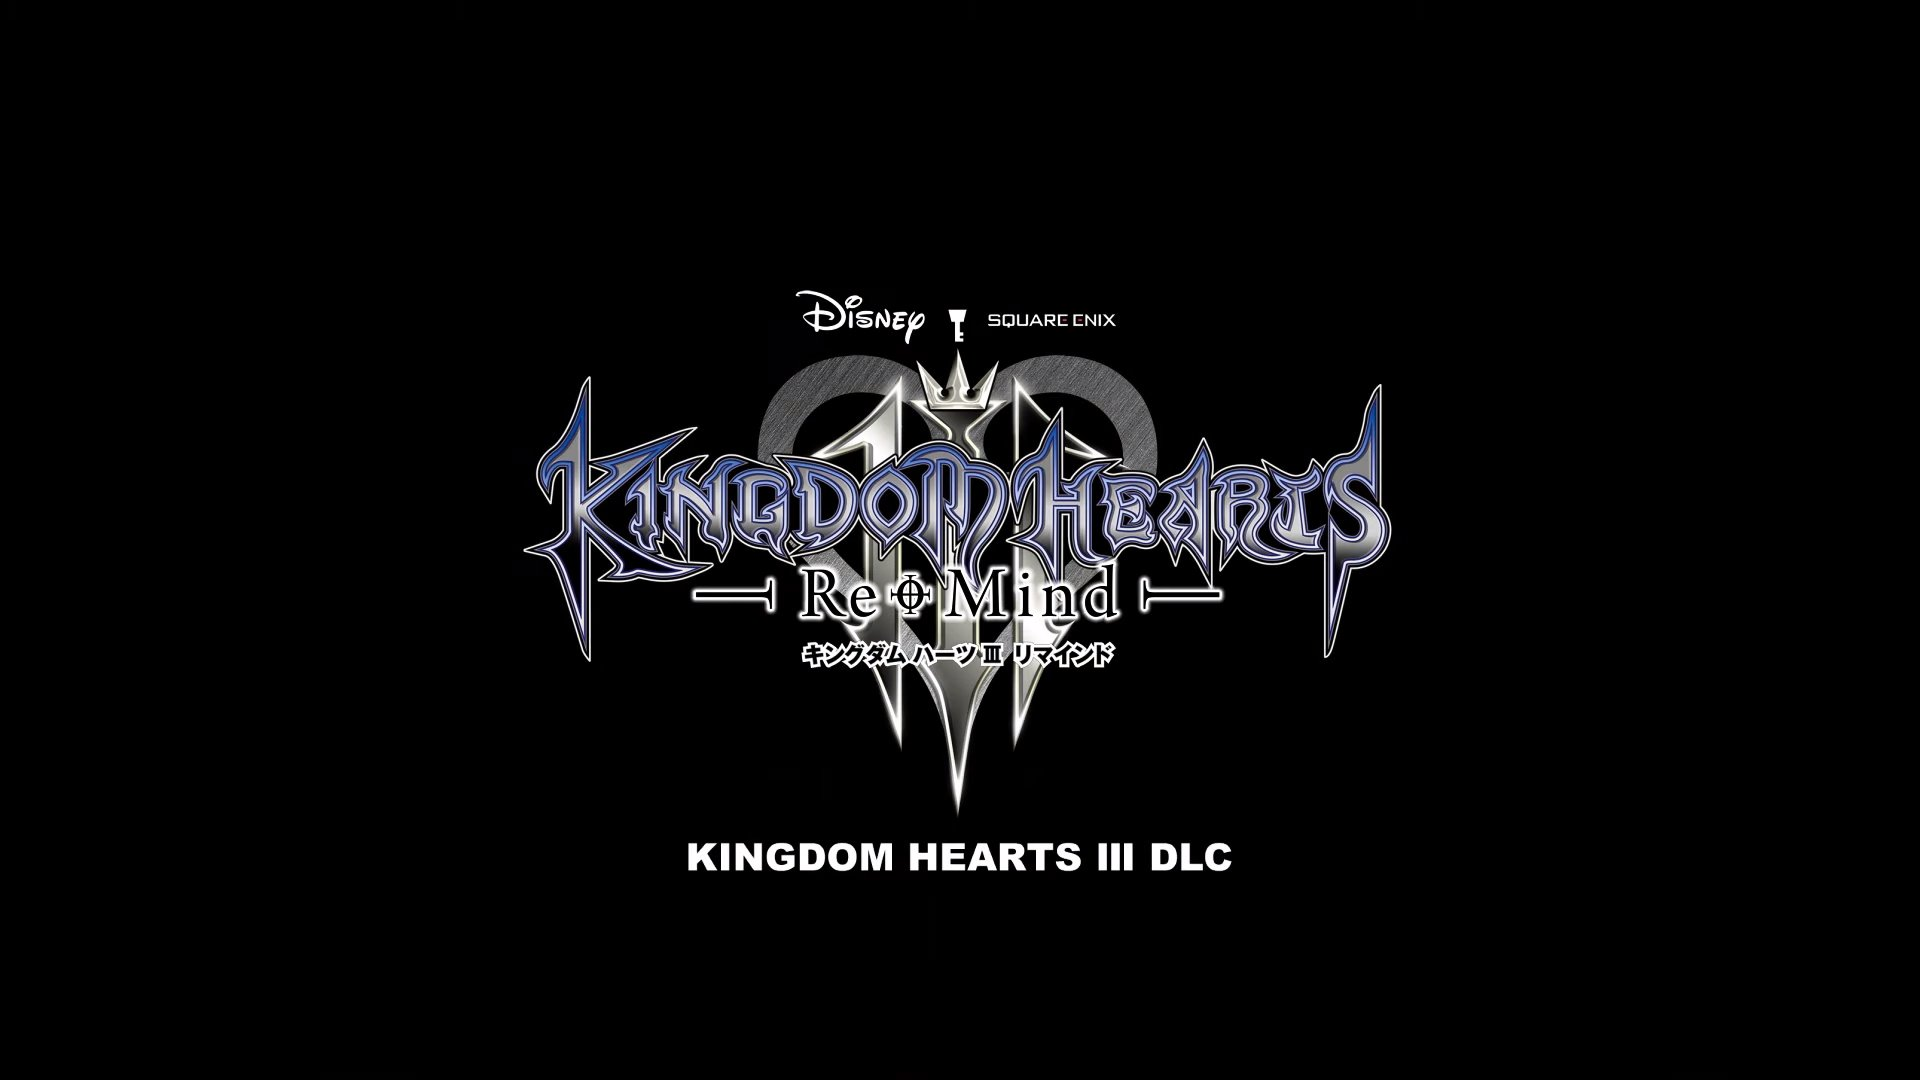 Kingdom Hearts 3 Remind logo